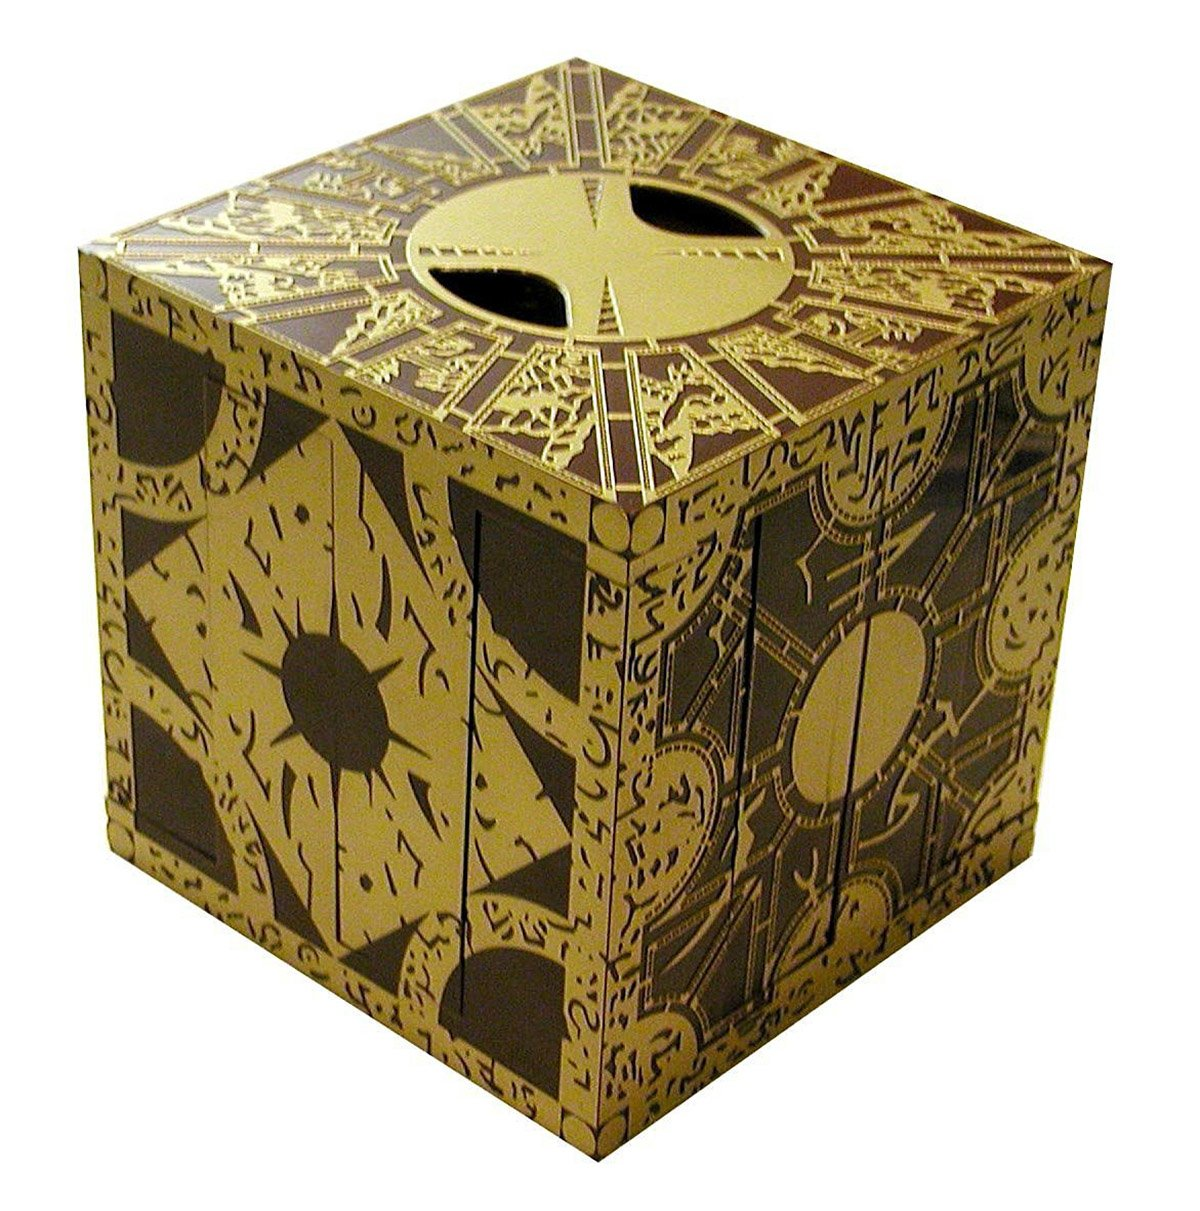 Hellraiser: Lament Configuration Box Set